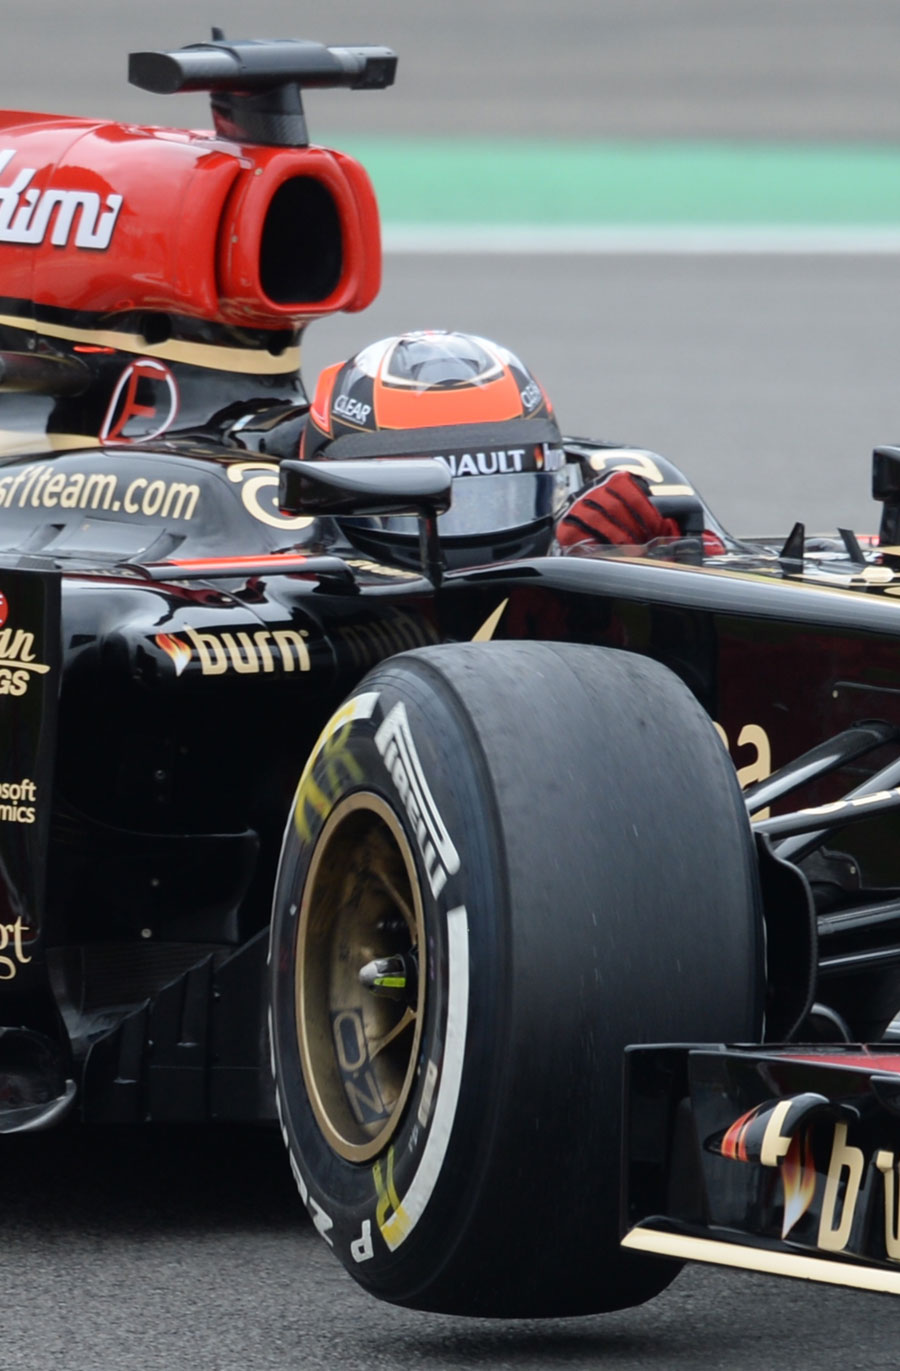 Kimi Raikkonen lifts a wheel in his Lotus